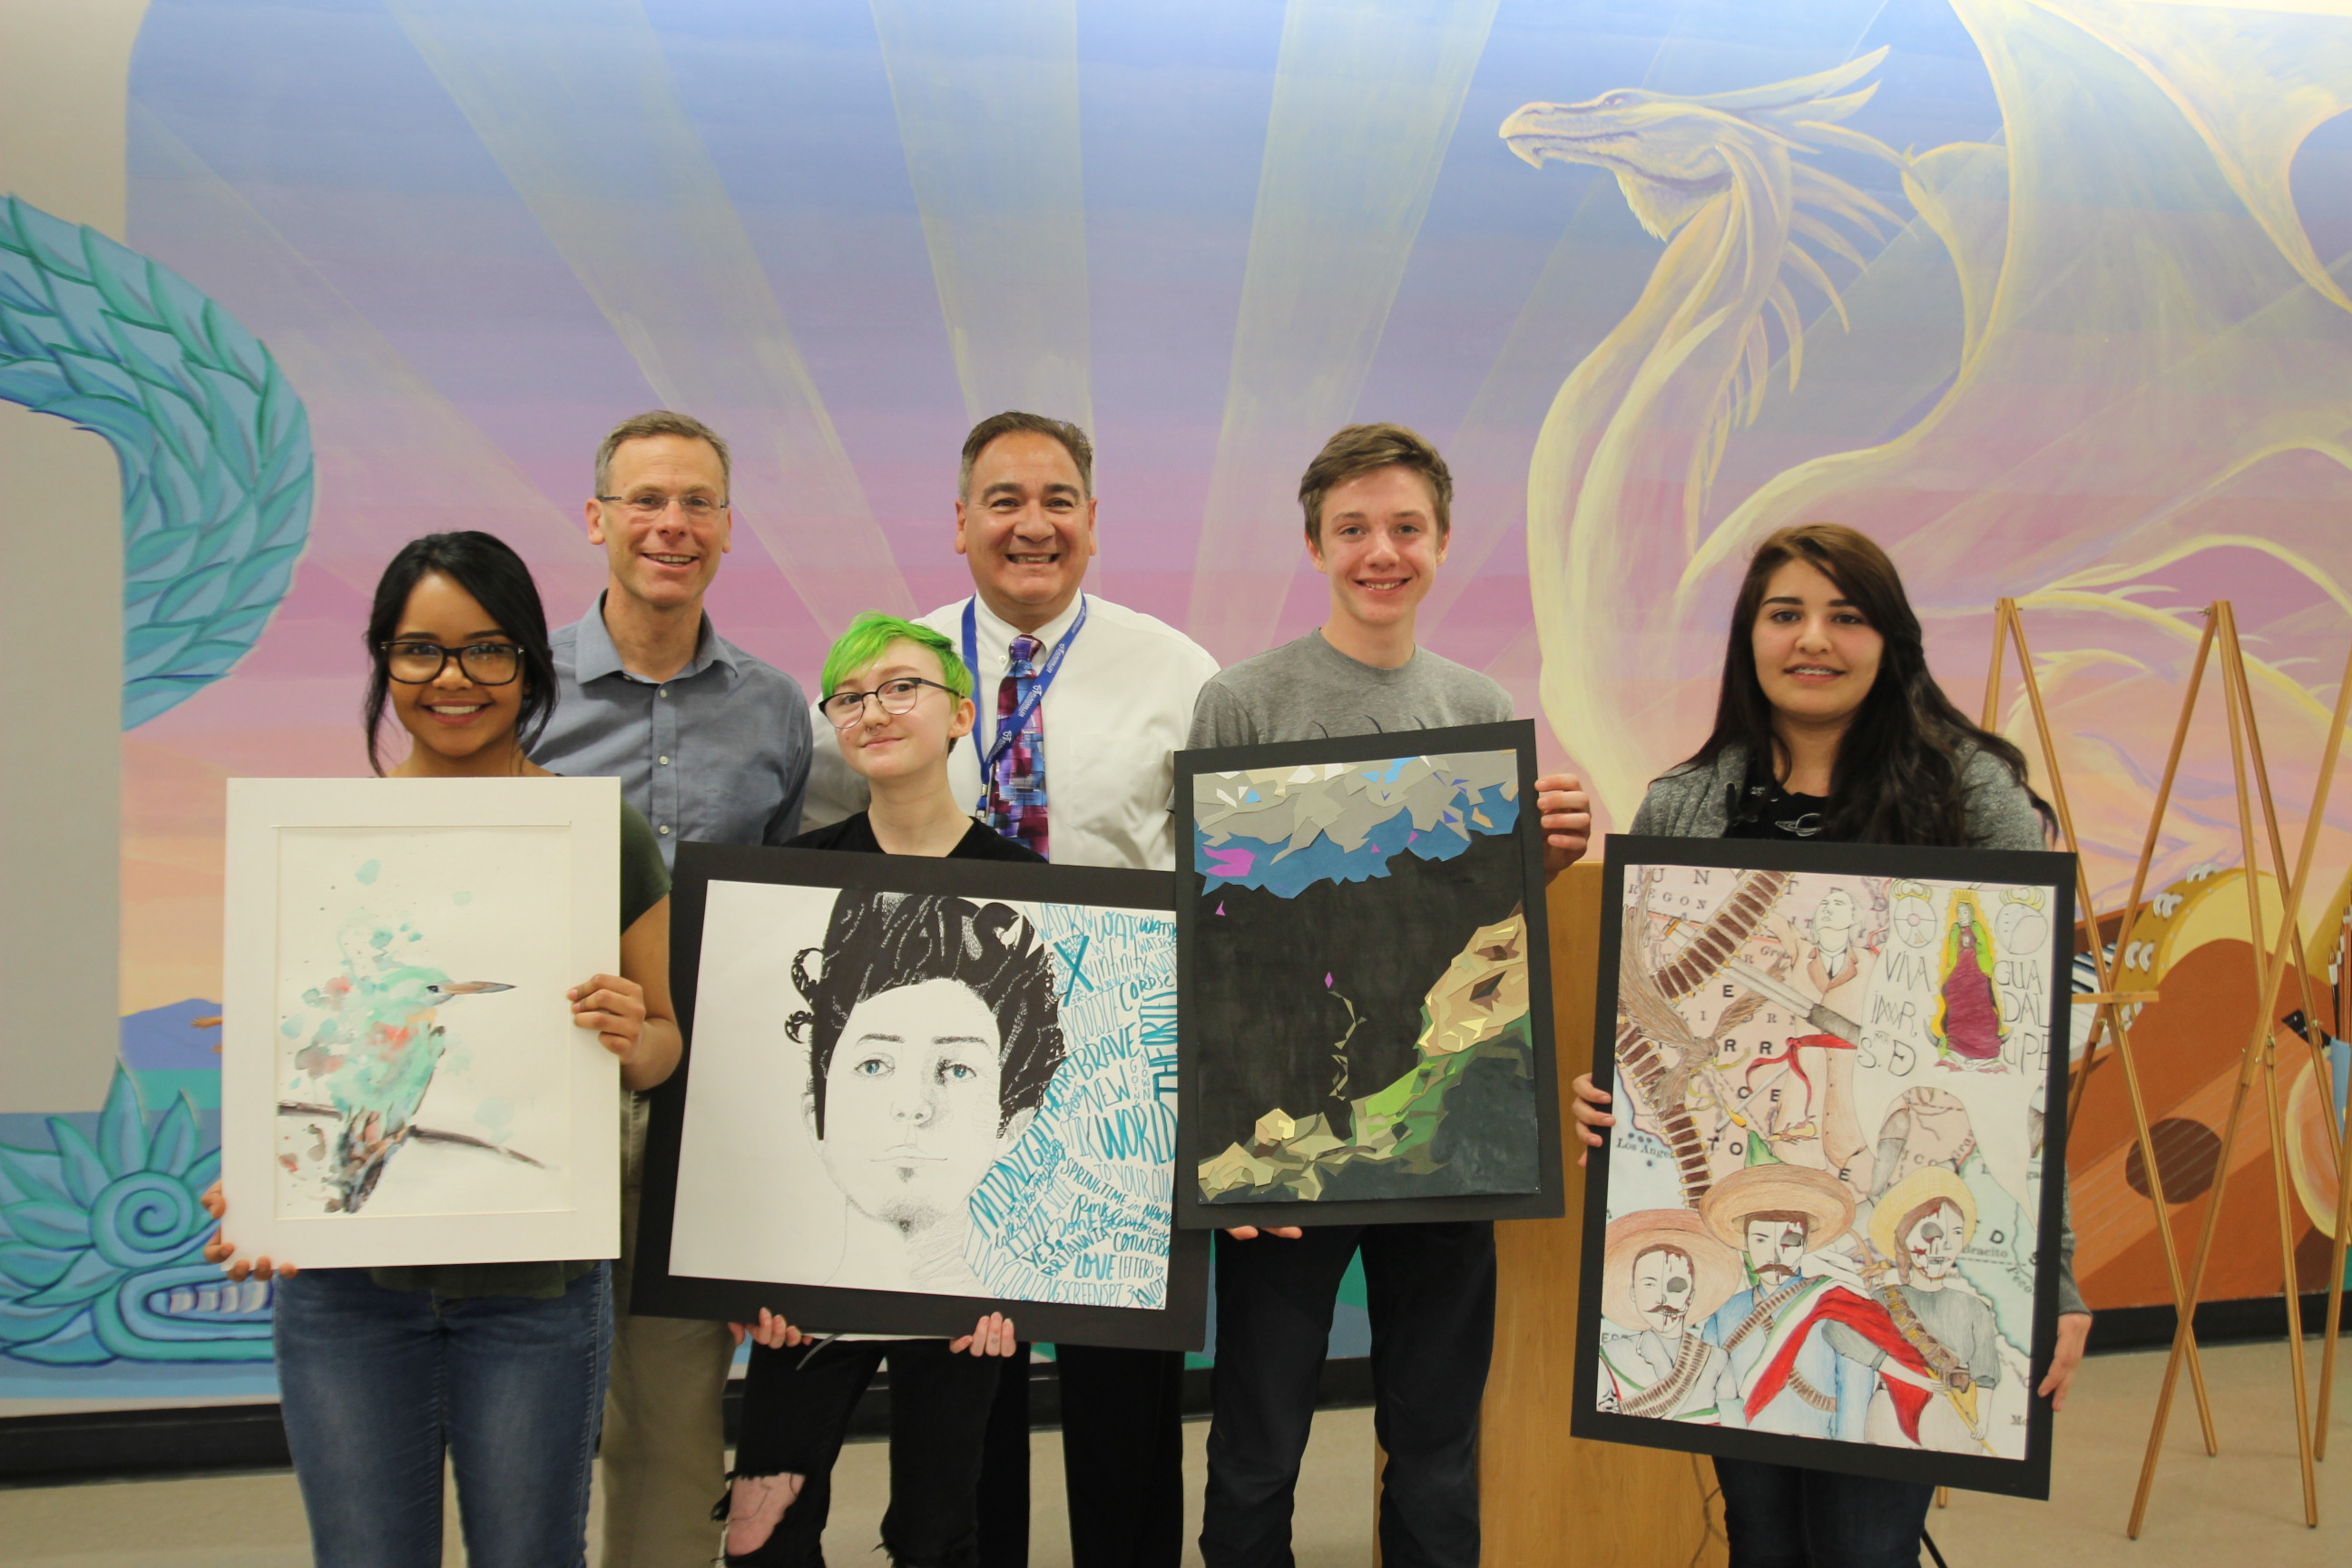 DPS Superintendent Tom Boasberg, back left, and Kunsmiller Creative Arts Academy Executive Principal Peter Castillo celebrated the school's 100% graduation rate in 2015-16 with KCAA student artists.